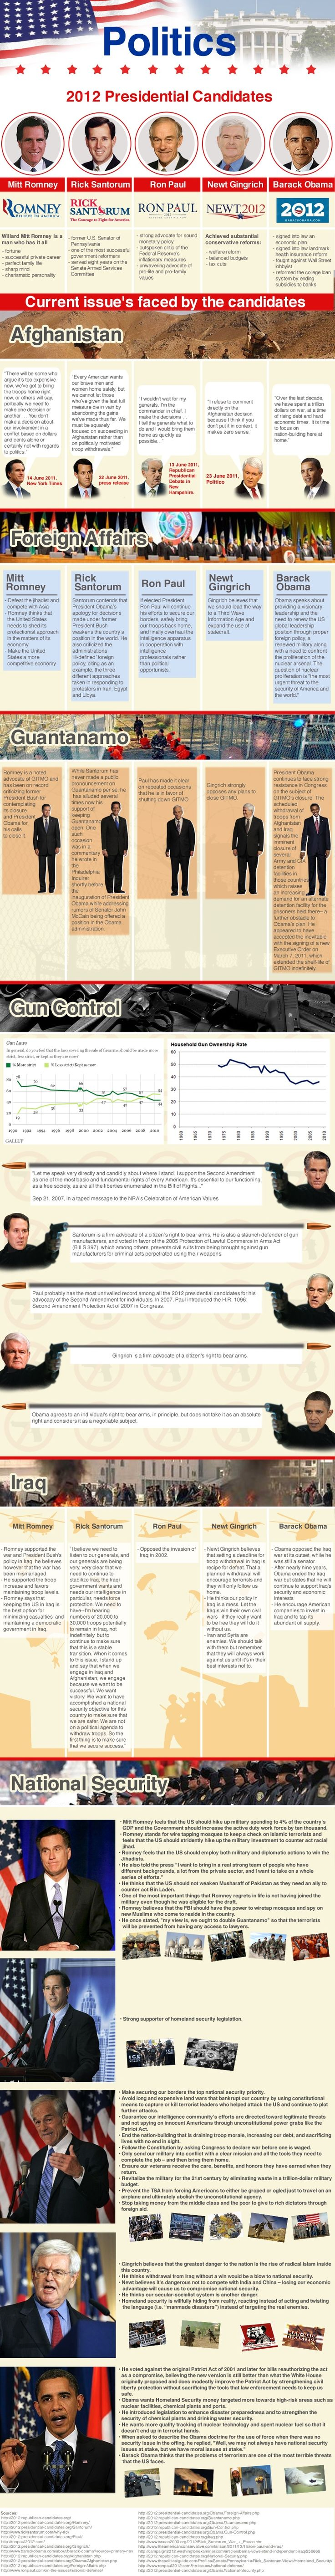 best 25+ presidential candidates ideas on pinterest | 2012